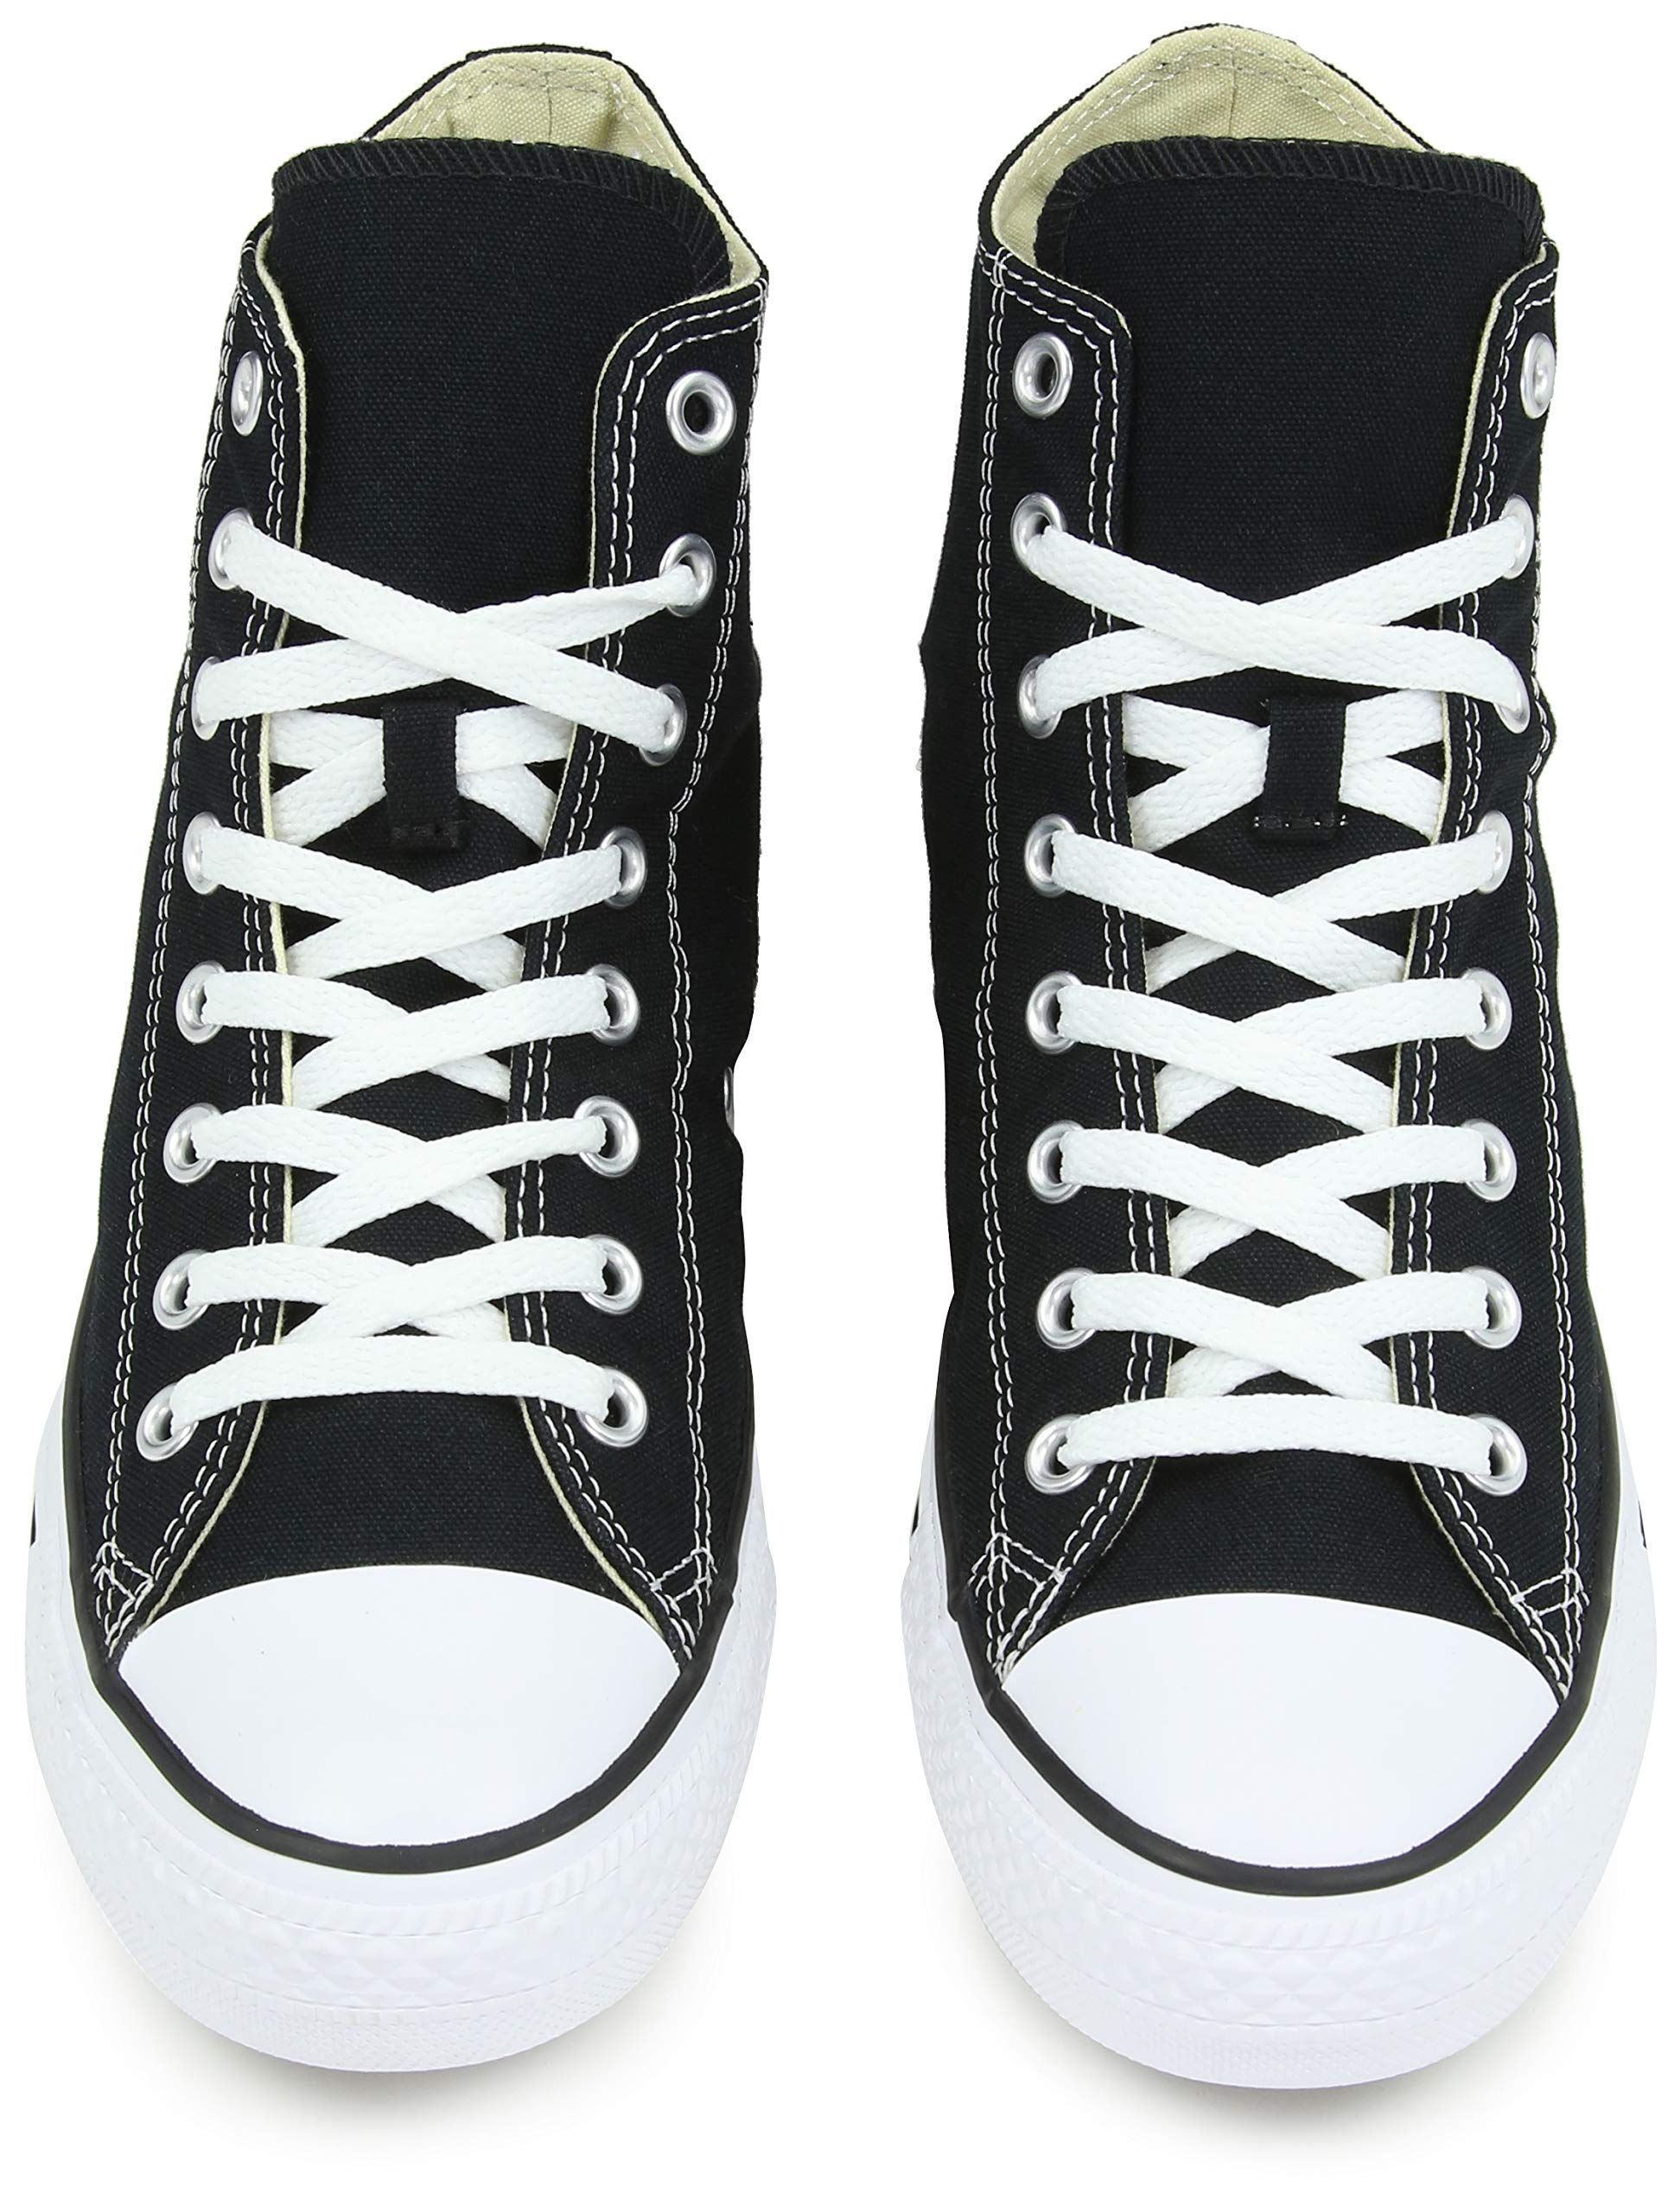 2f8223f2fc65 Converse Clothing   Apparel Chuck Taylor All Star High Top Sneaker ...